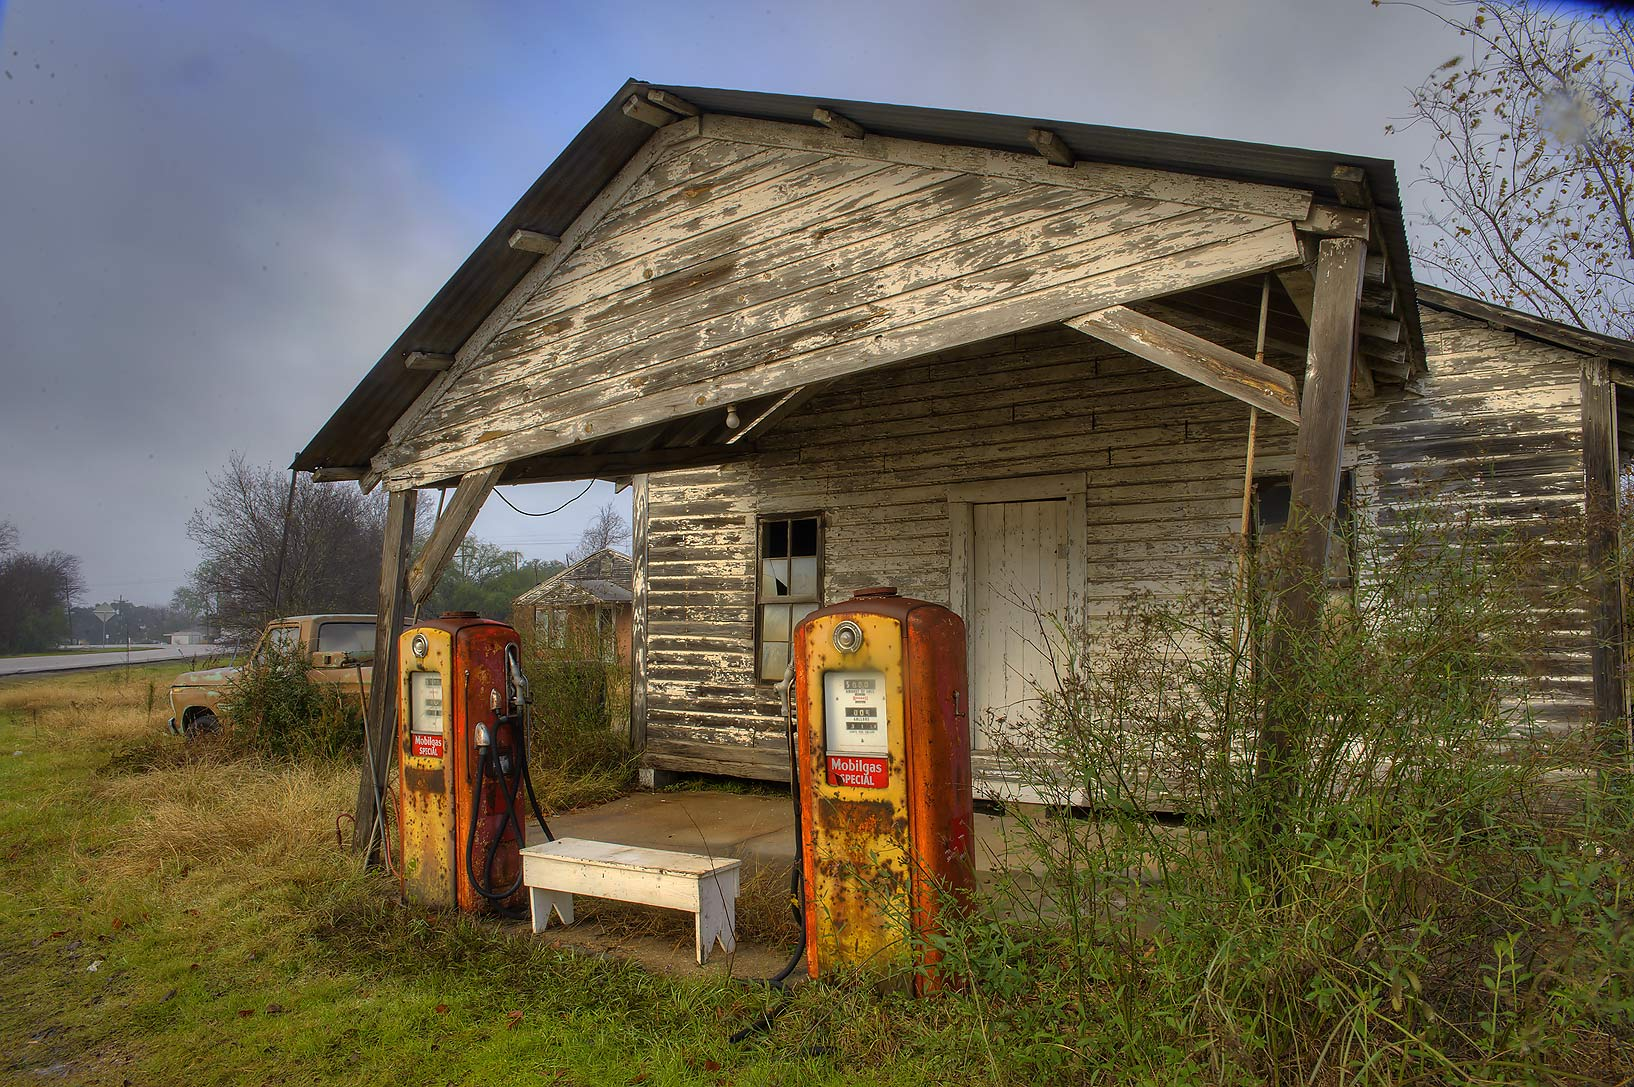 Vintage gas station near road FM 39 at sunrise. North Zulch, Texas